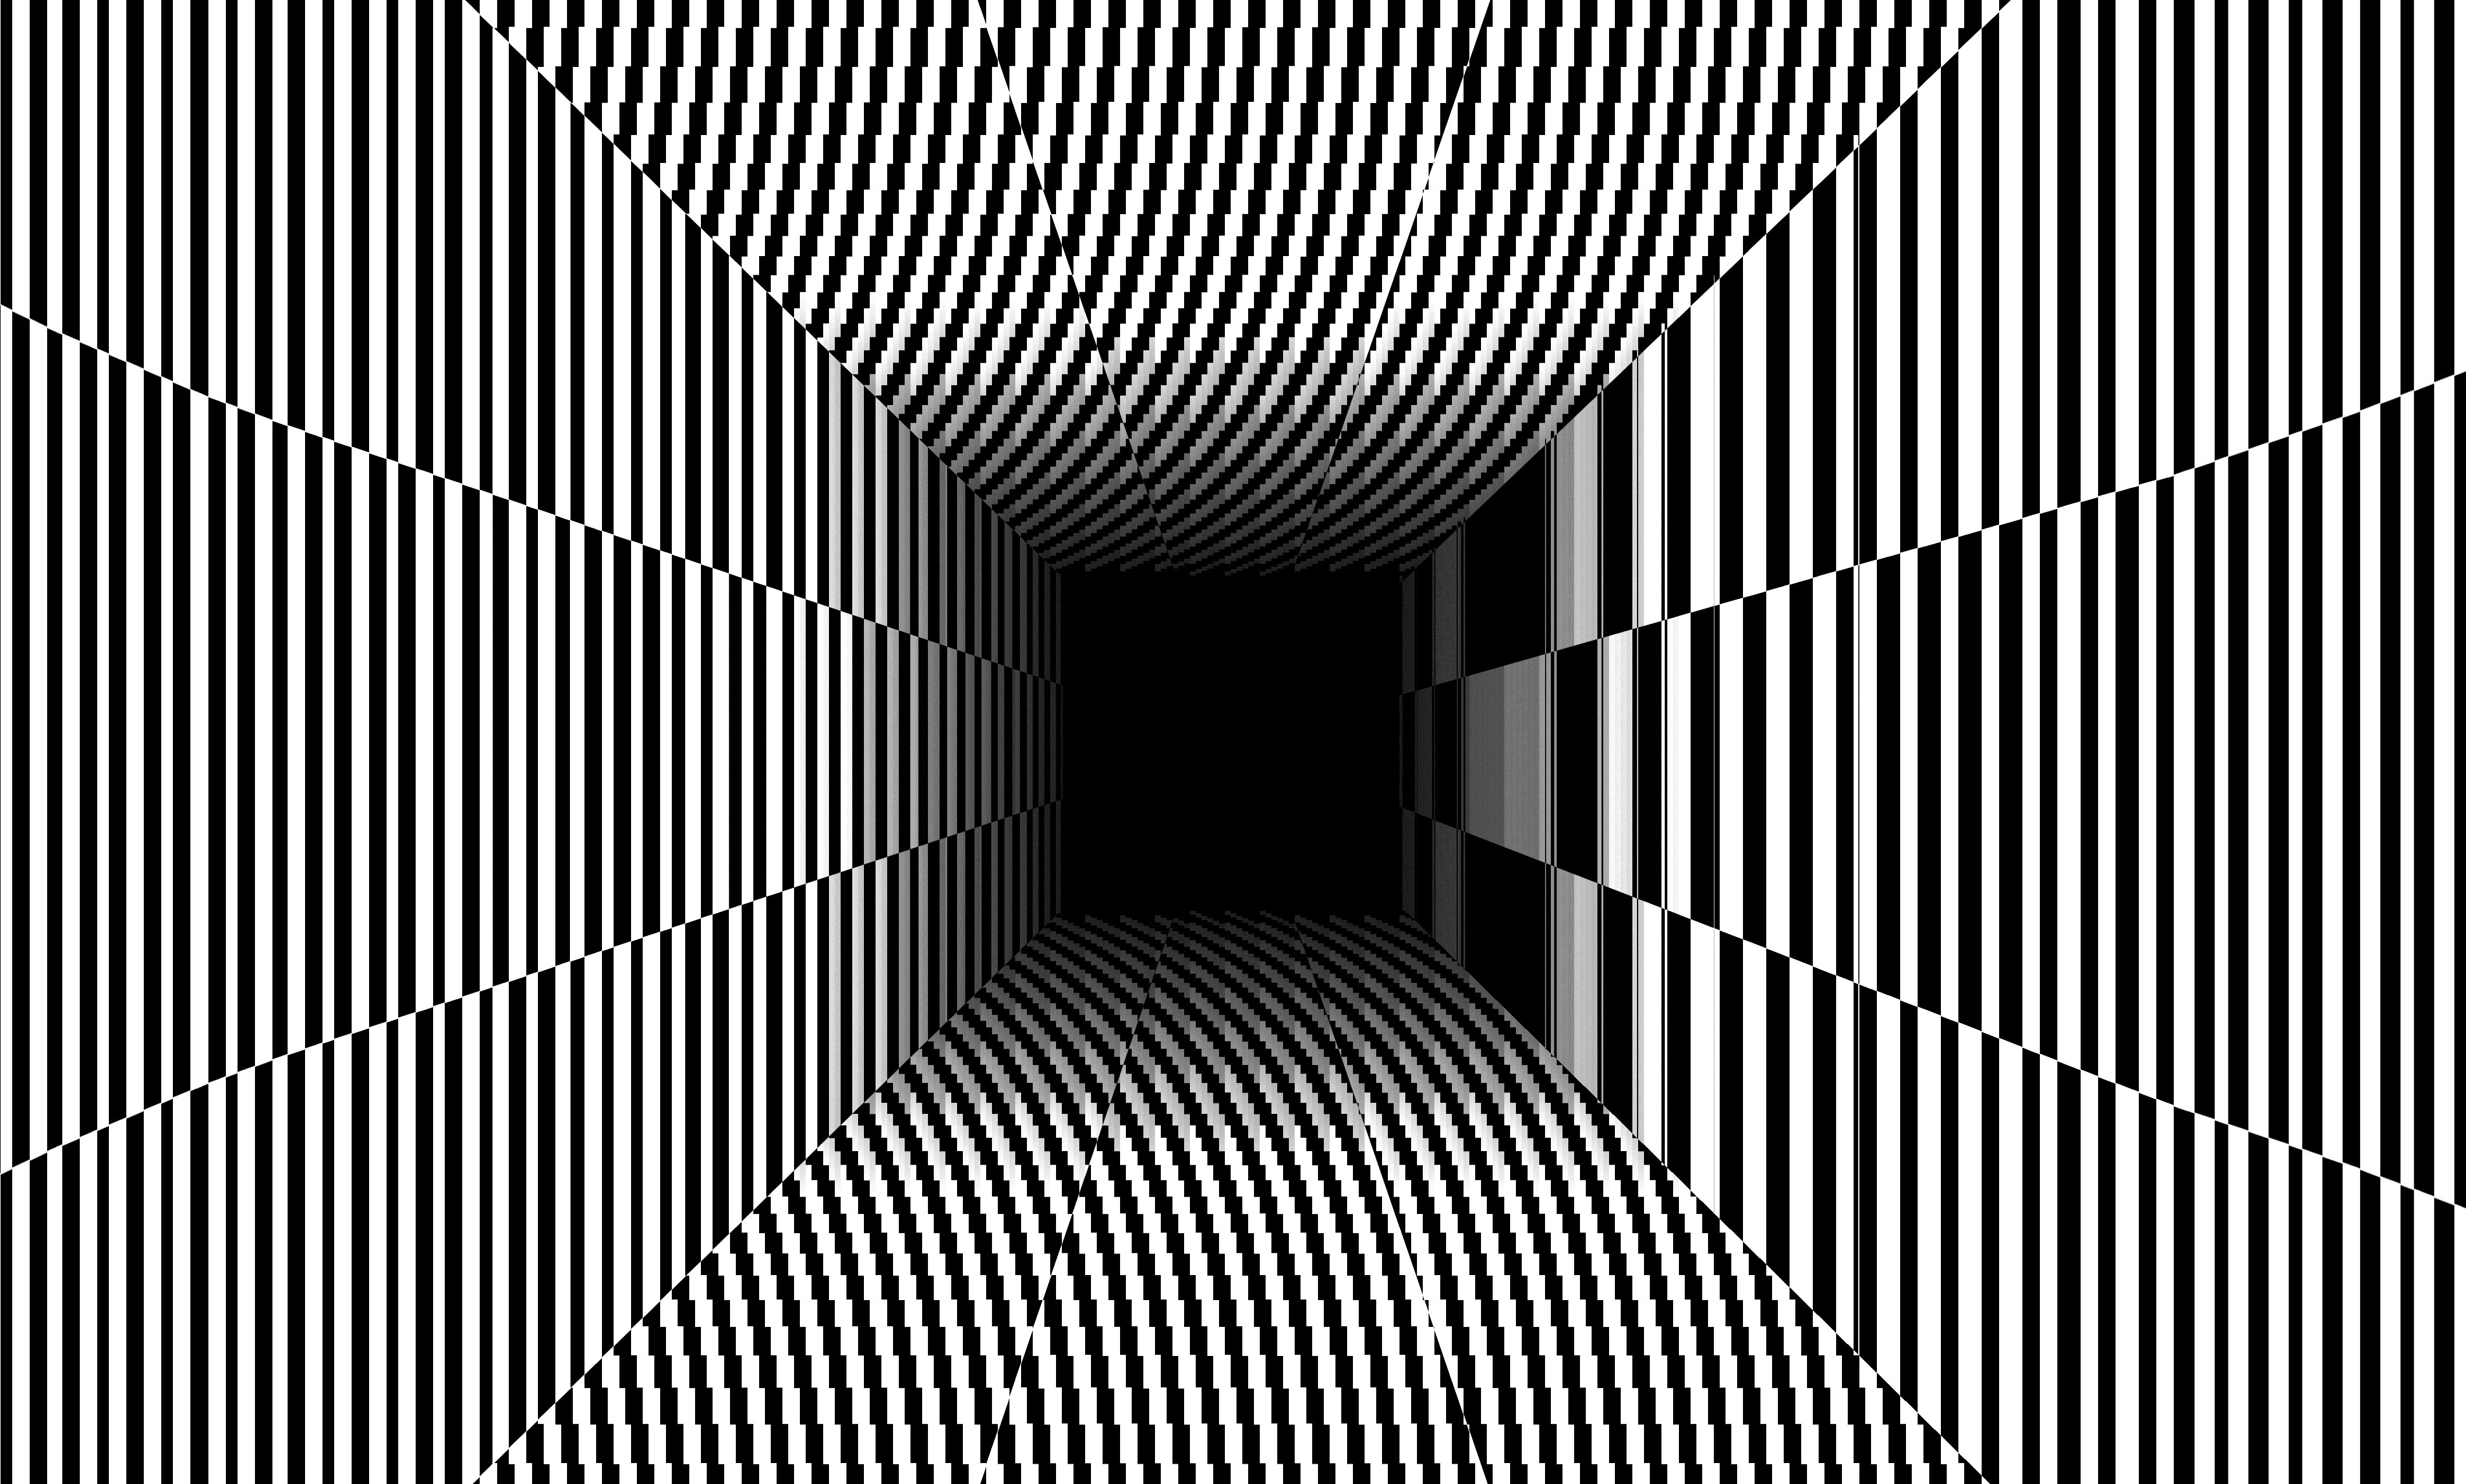 optical illusions pictures - HD3300×2550